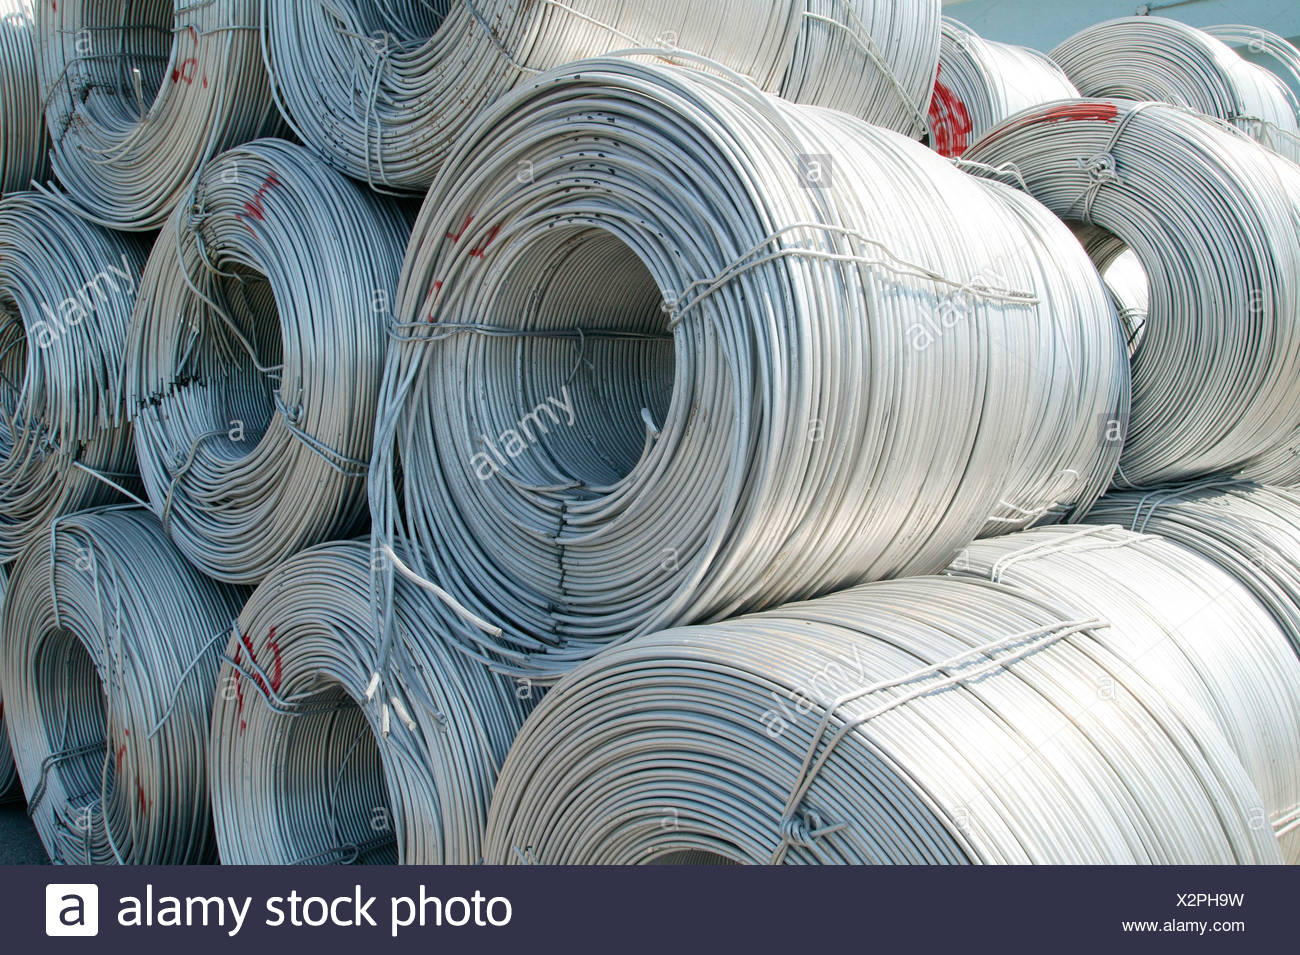 Rolls of Aluminum made from recycled products - Stock Image